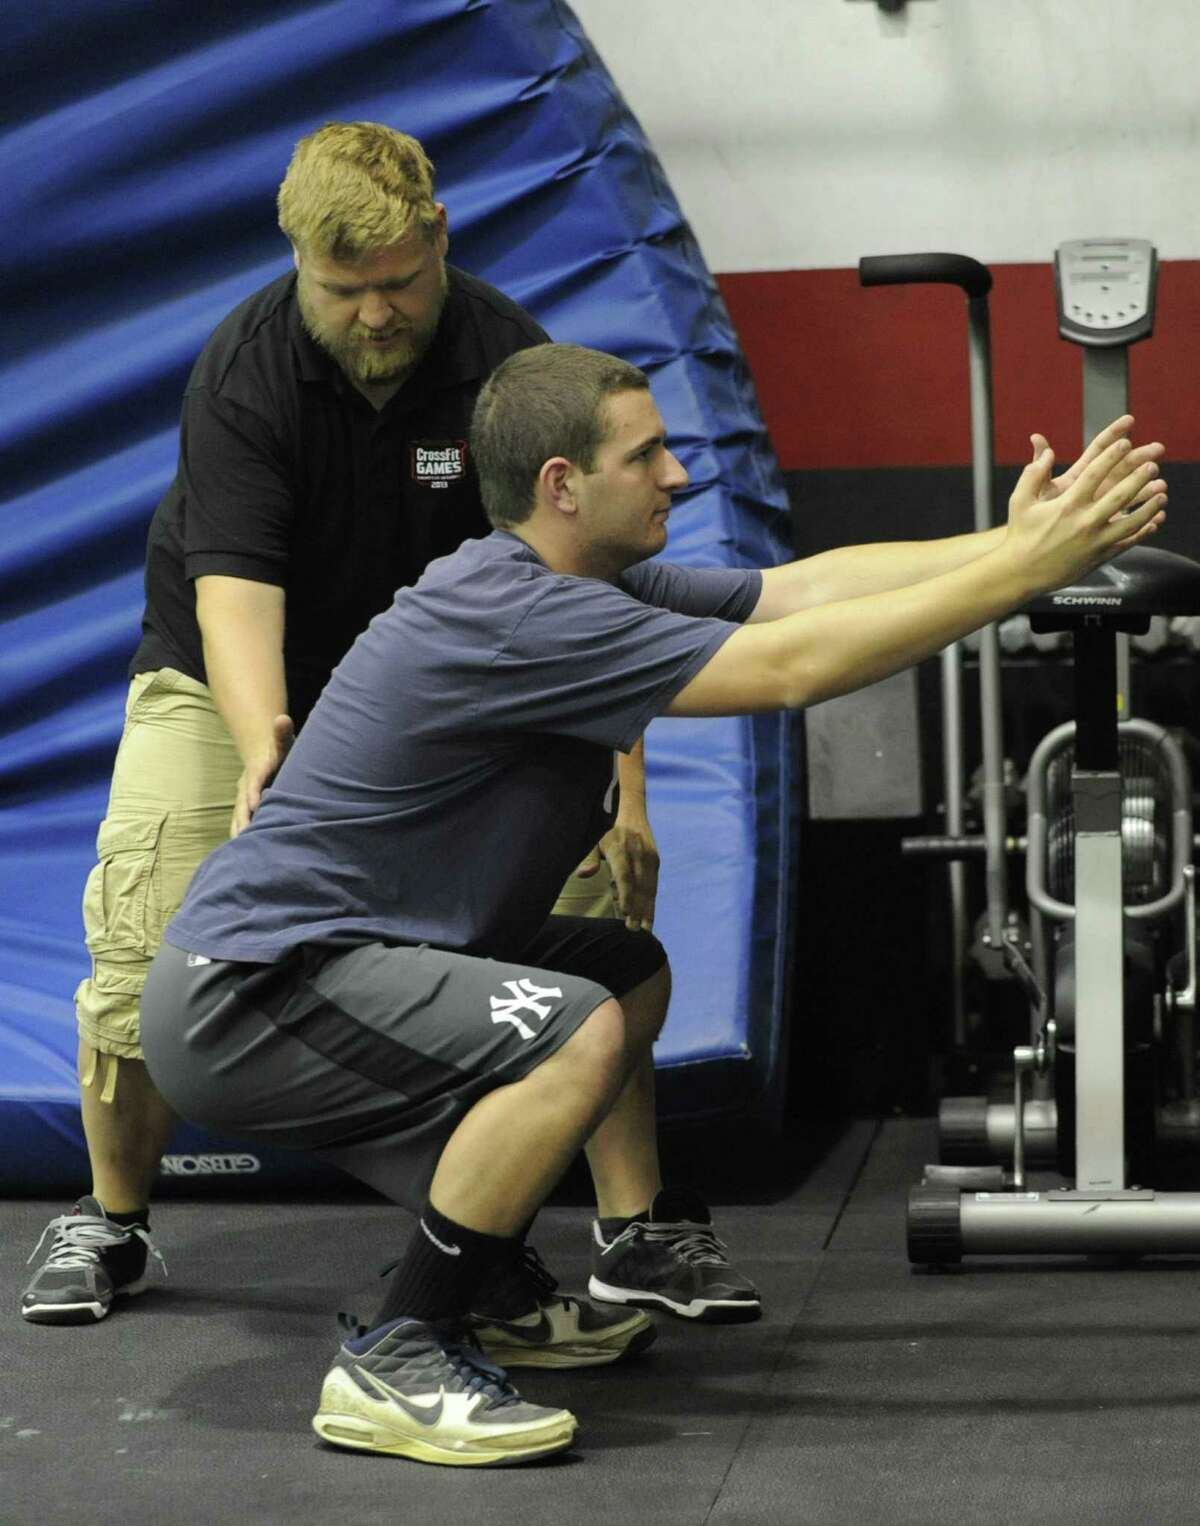 Phil D'Abbraccio performs air squats in a CrossFit workout with a trainer Jason Murphy at Albany CrossFit which is located in The Court Club on Thursday, June 27, 2013 in Colonie, N.Y. (Lori Van Buren / Times Union)